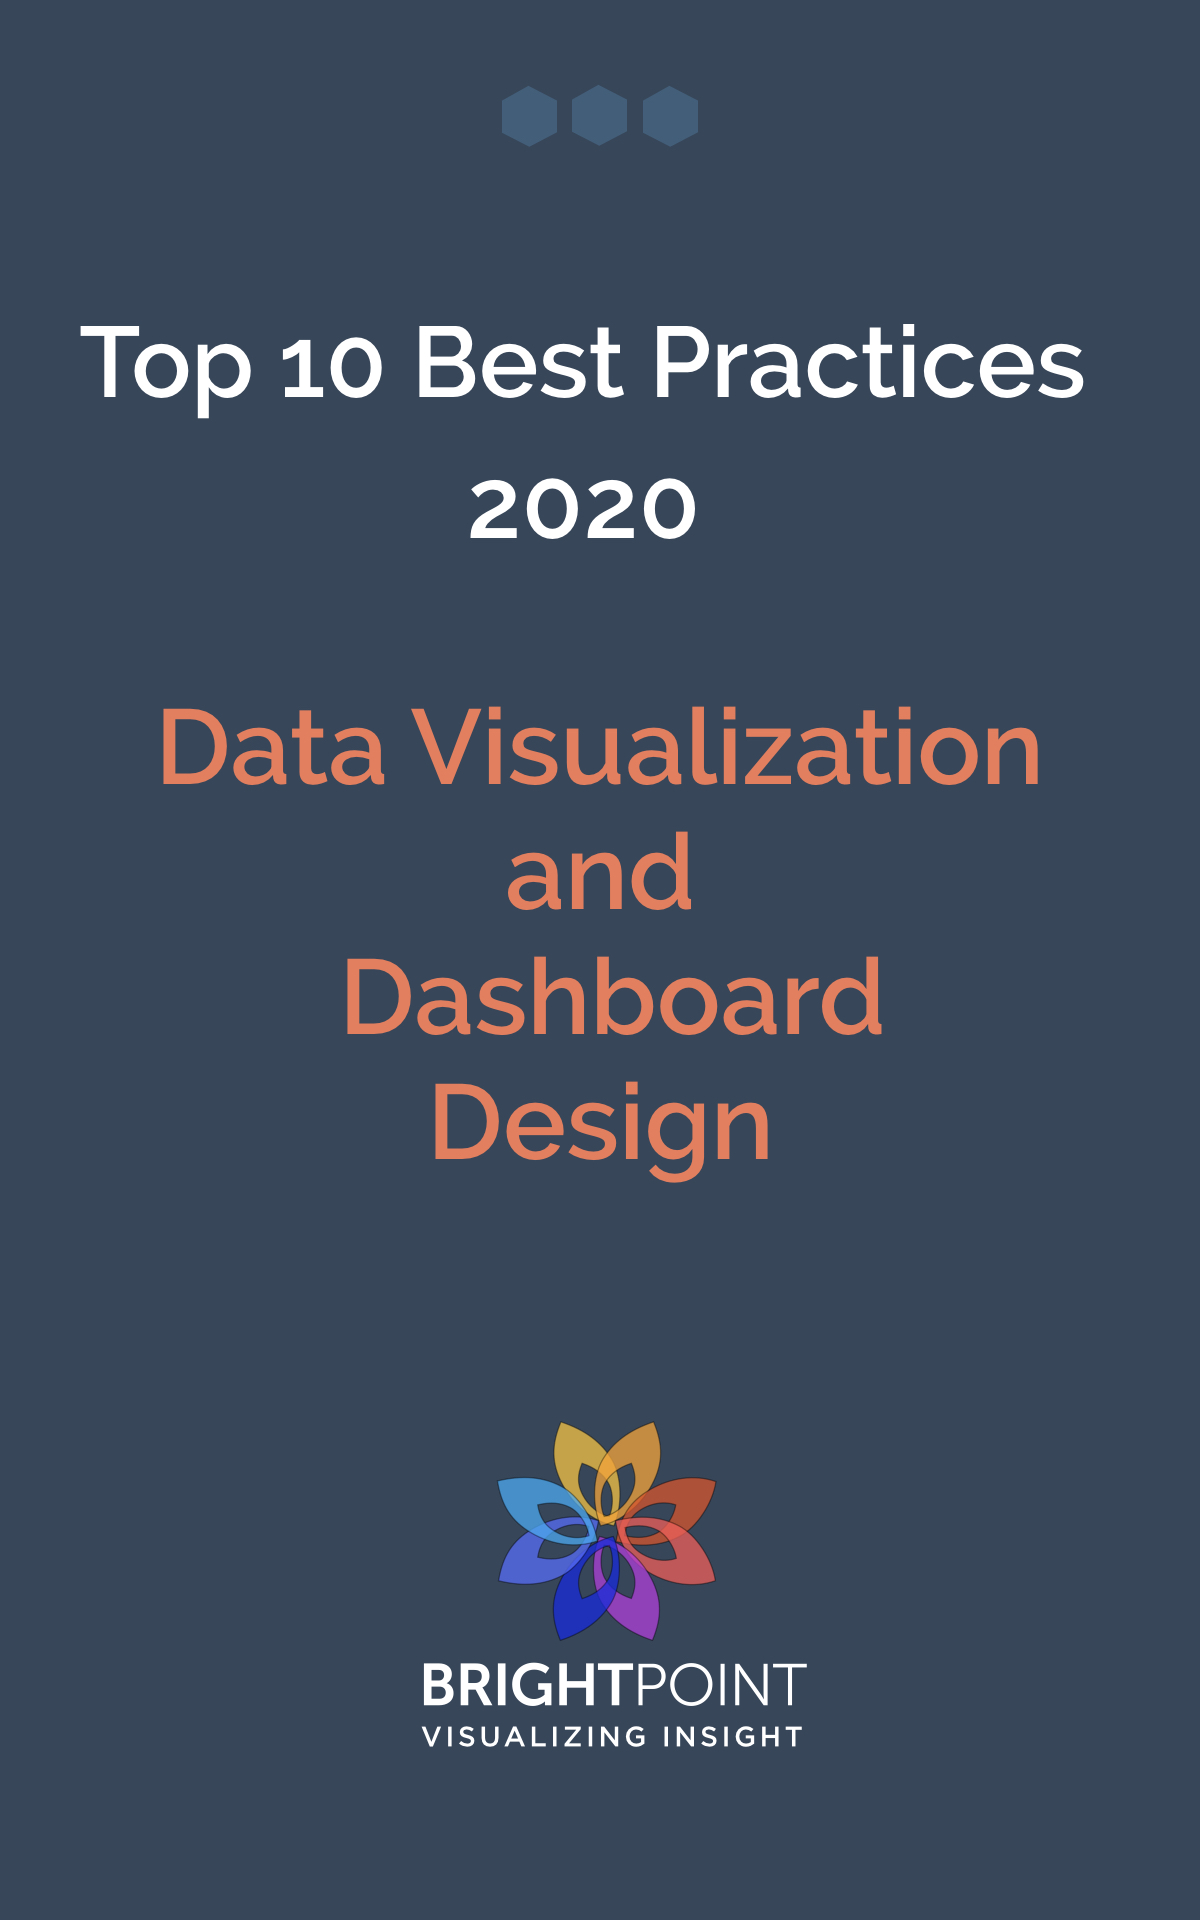 DashboardDesign_Top10.001